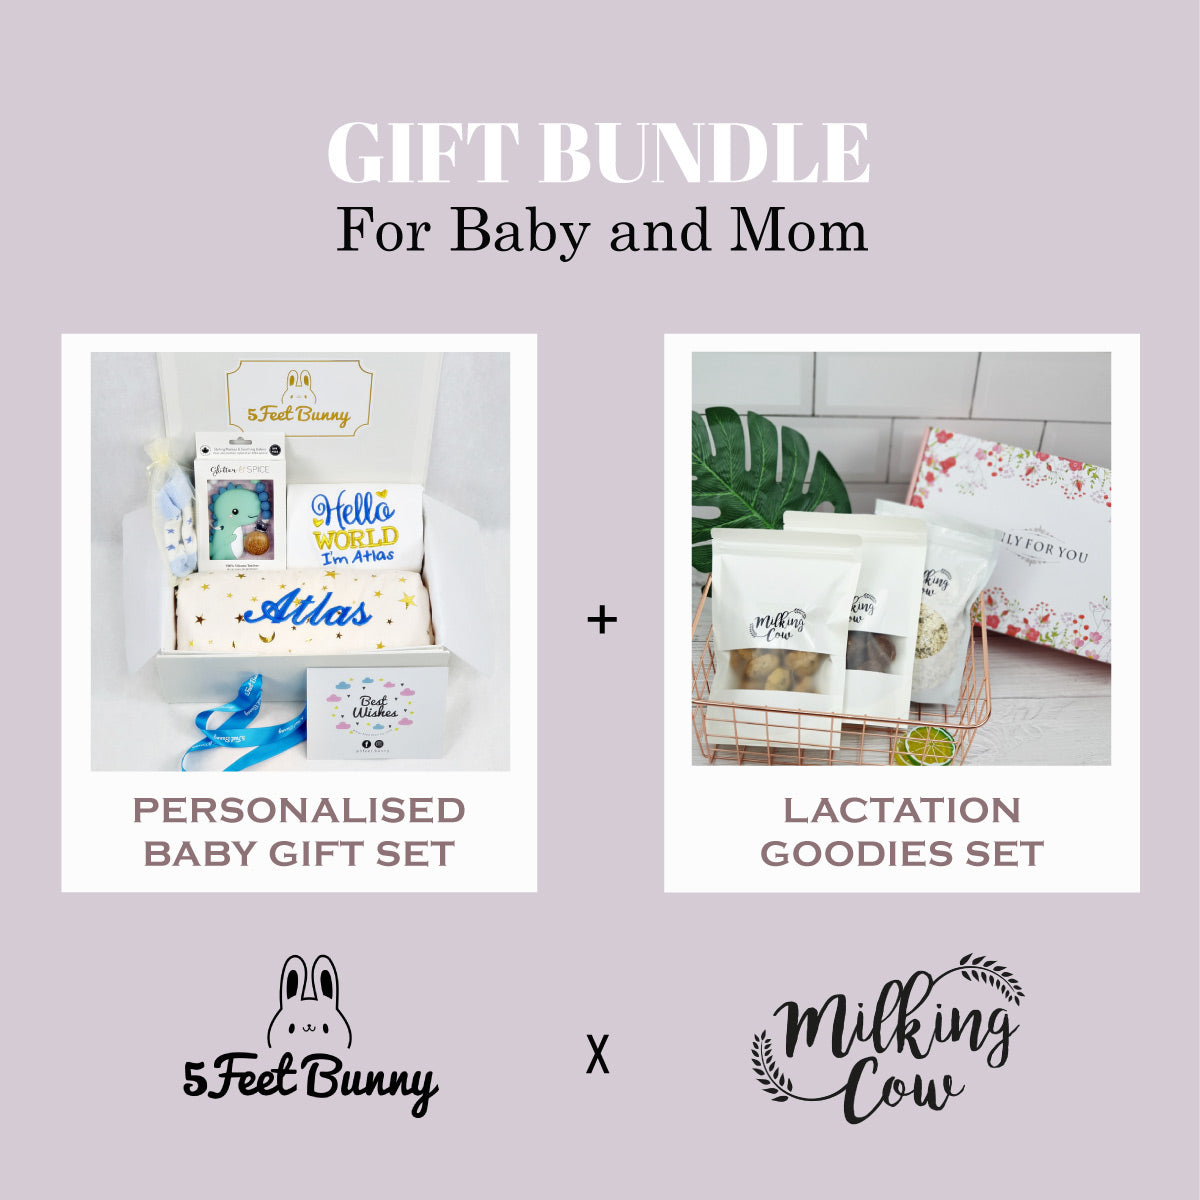 Starry Hello World Gift Set & Lactation Goodies Set